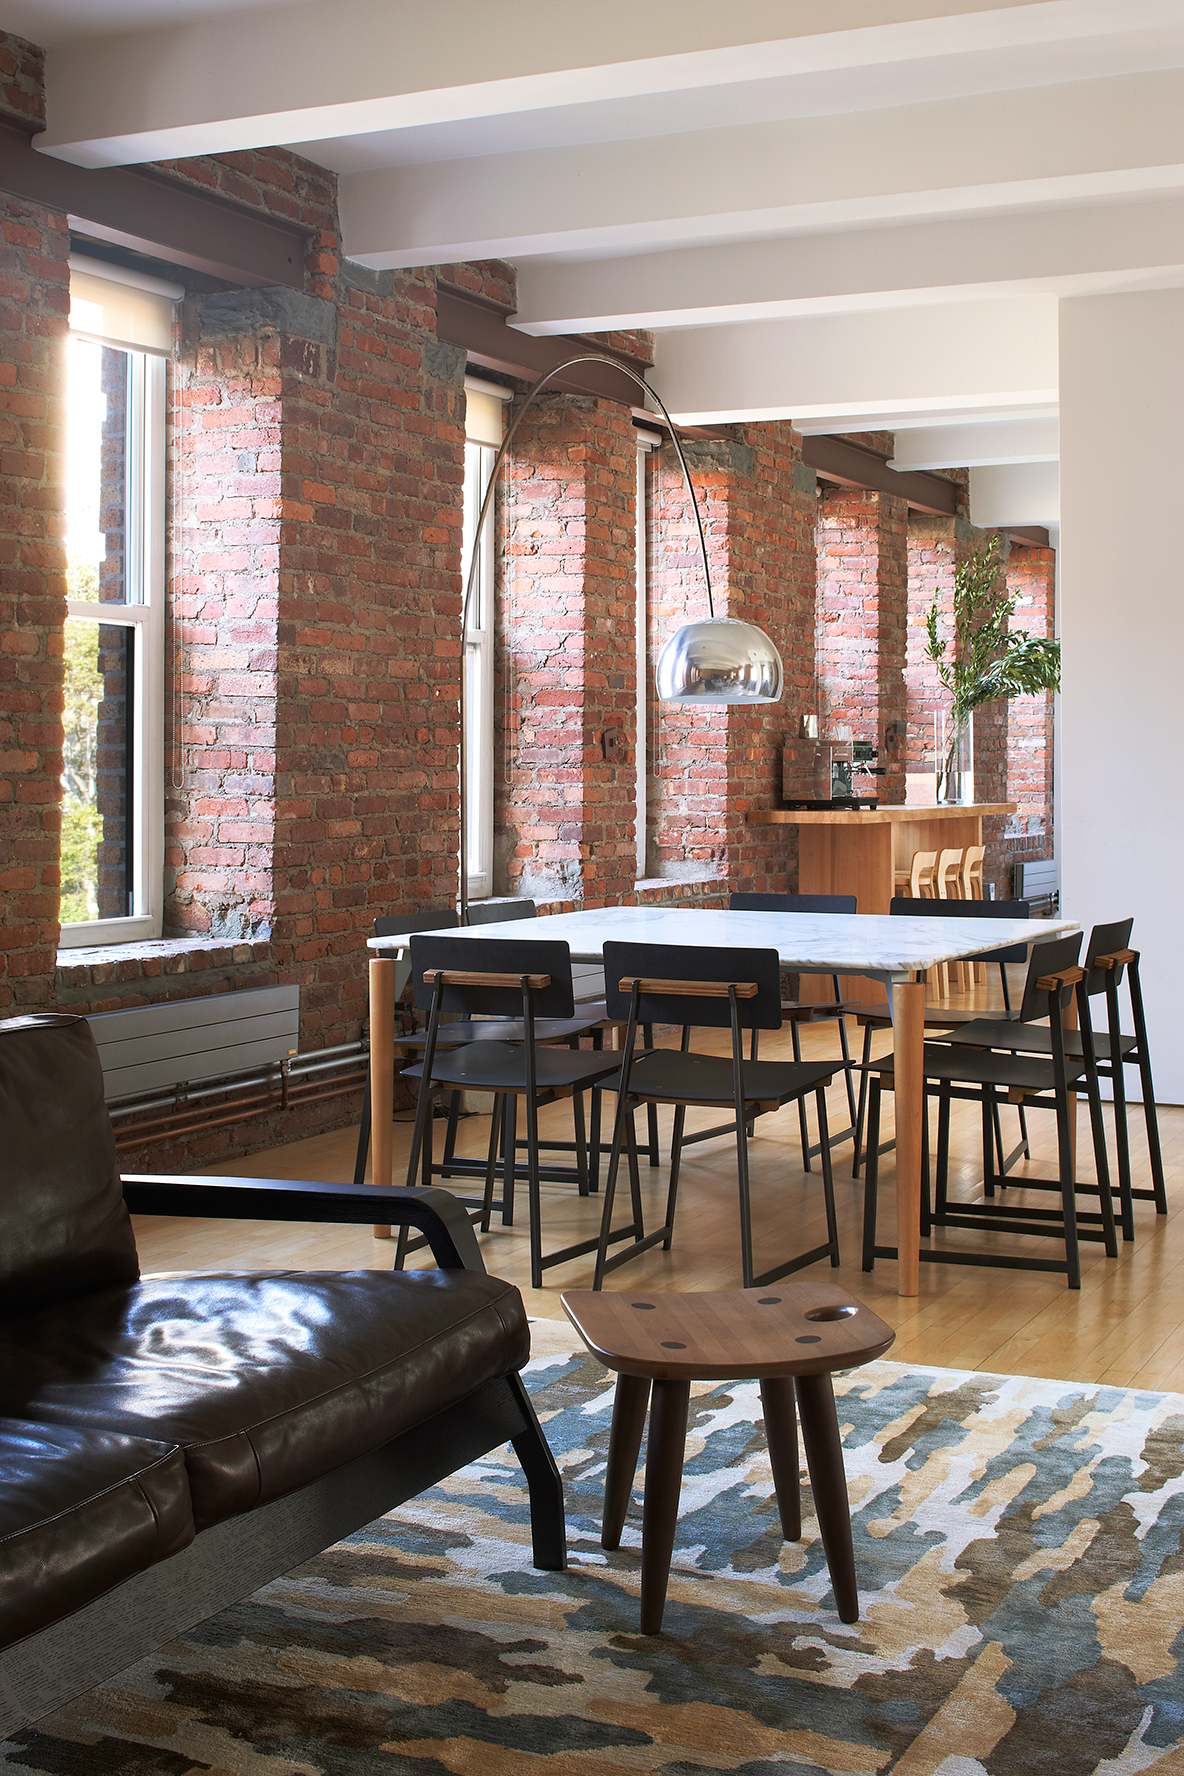 magdalena-keck-chinatown-loft-dining-area